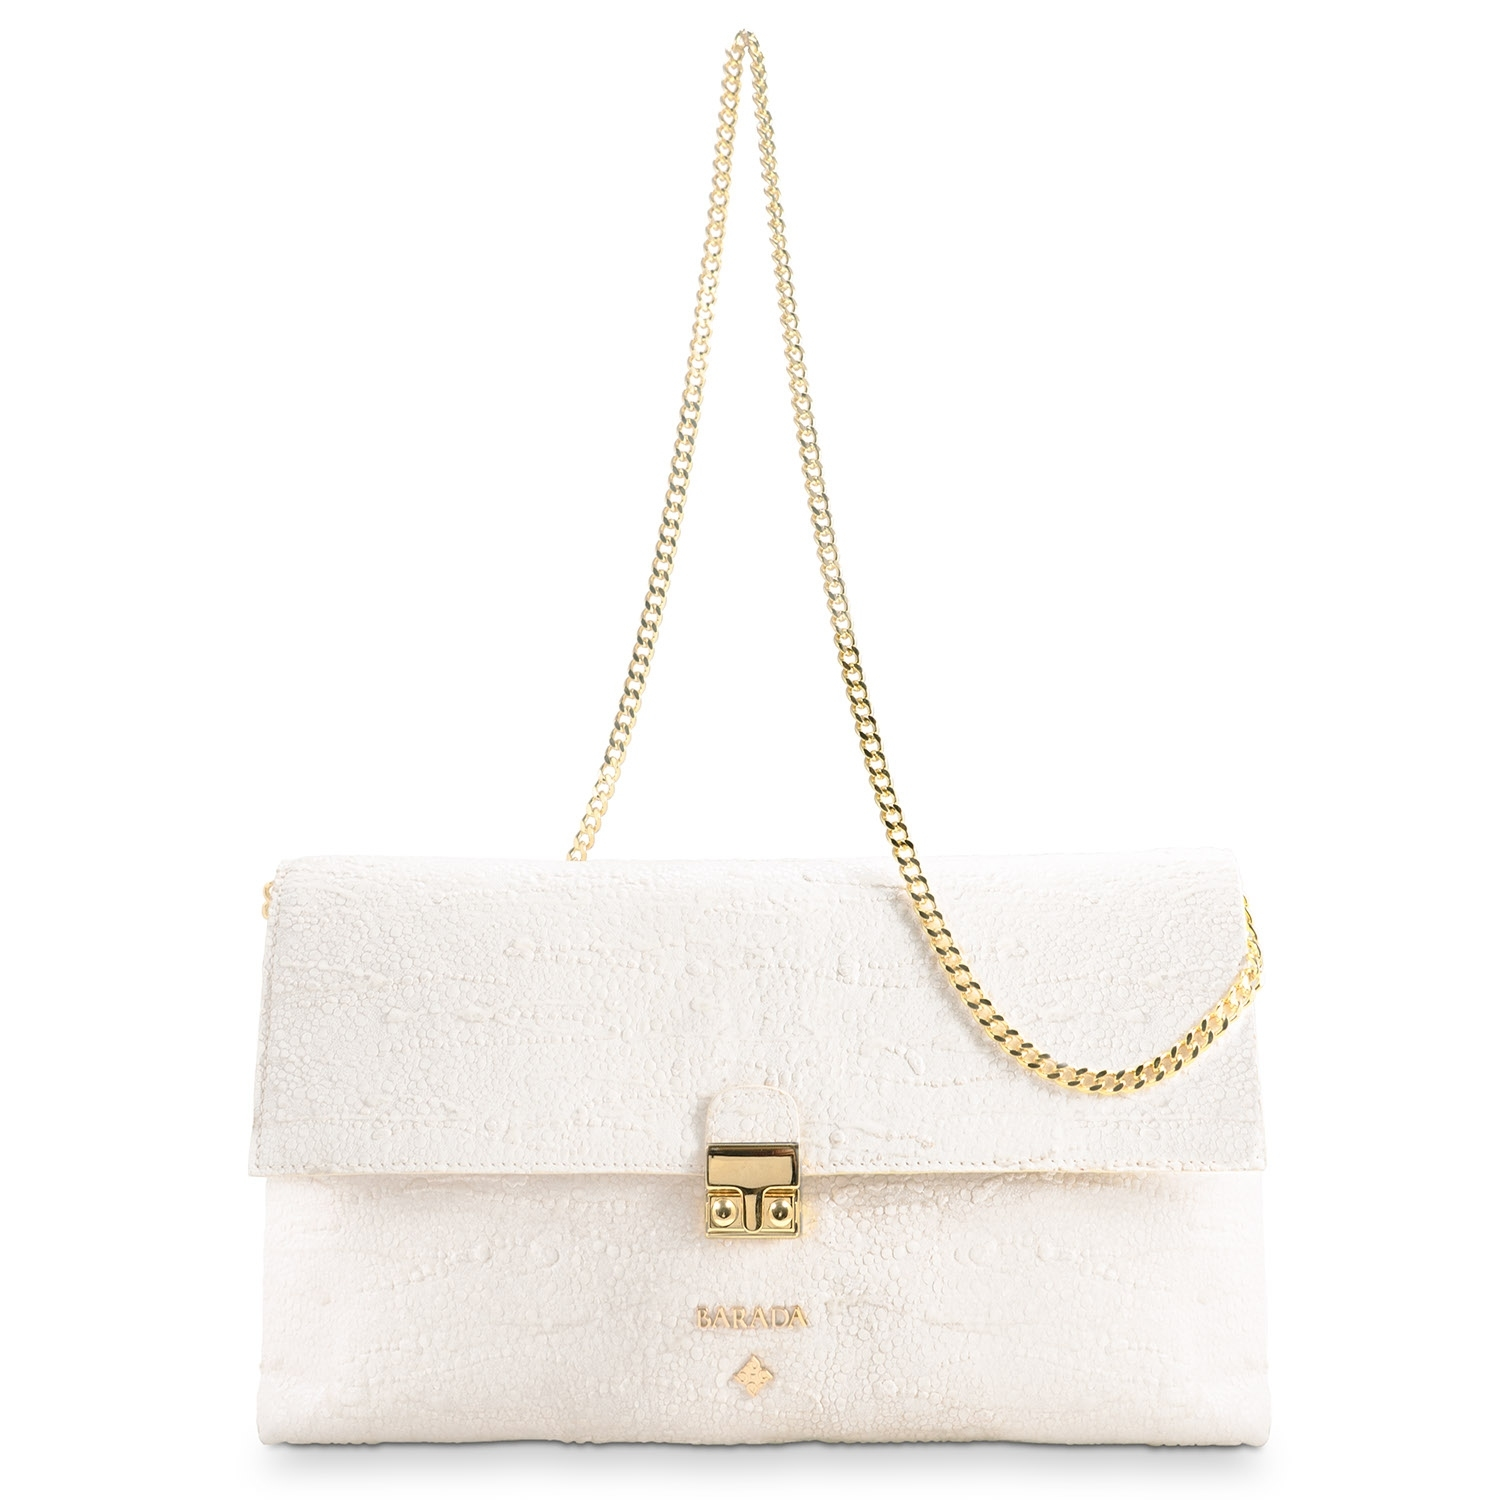 c173138db84e Clutch Handbag from our Dama Blanca collection in Lamb Skin and Beige color.  Loading zoom